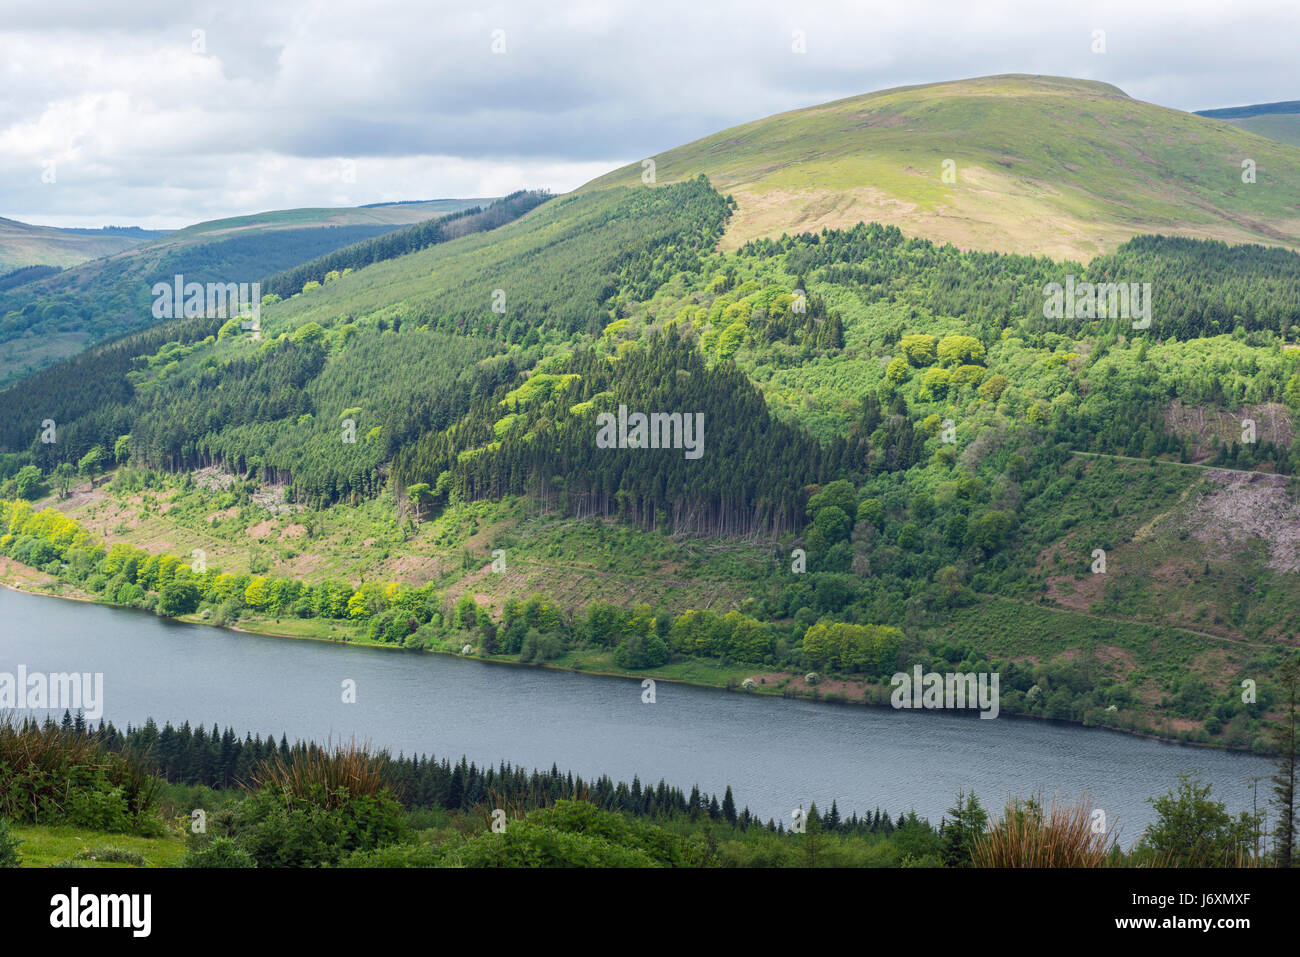 The Talybont Valley Brecon Beacons National Park - Stock Image